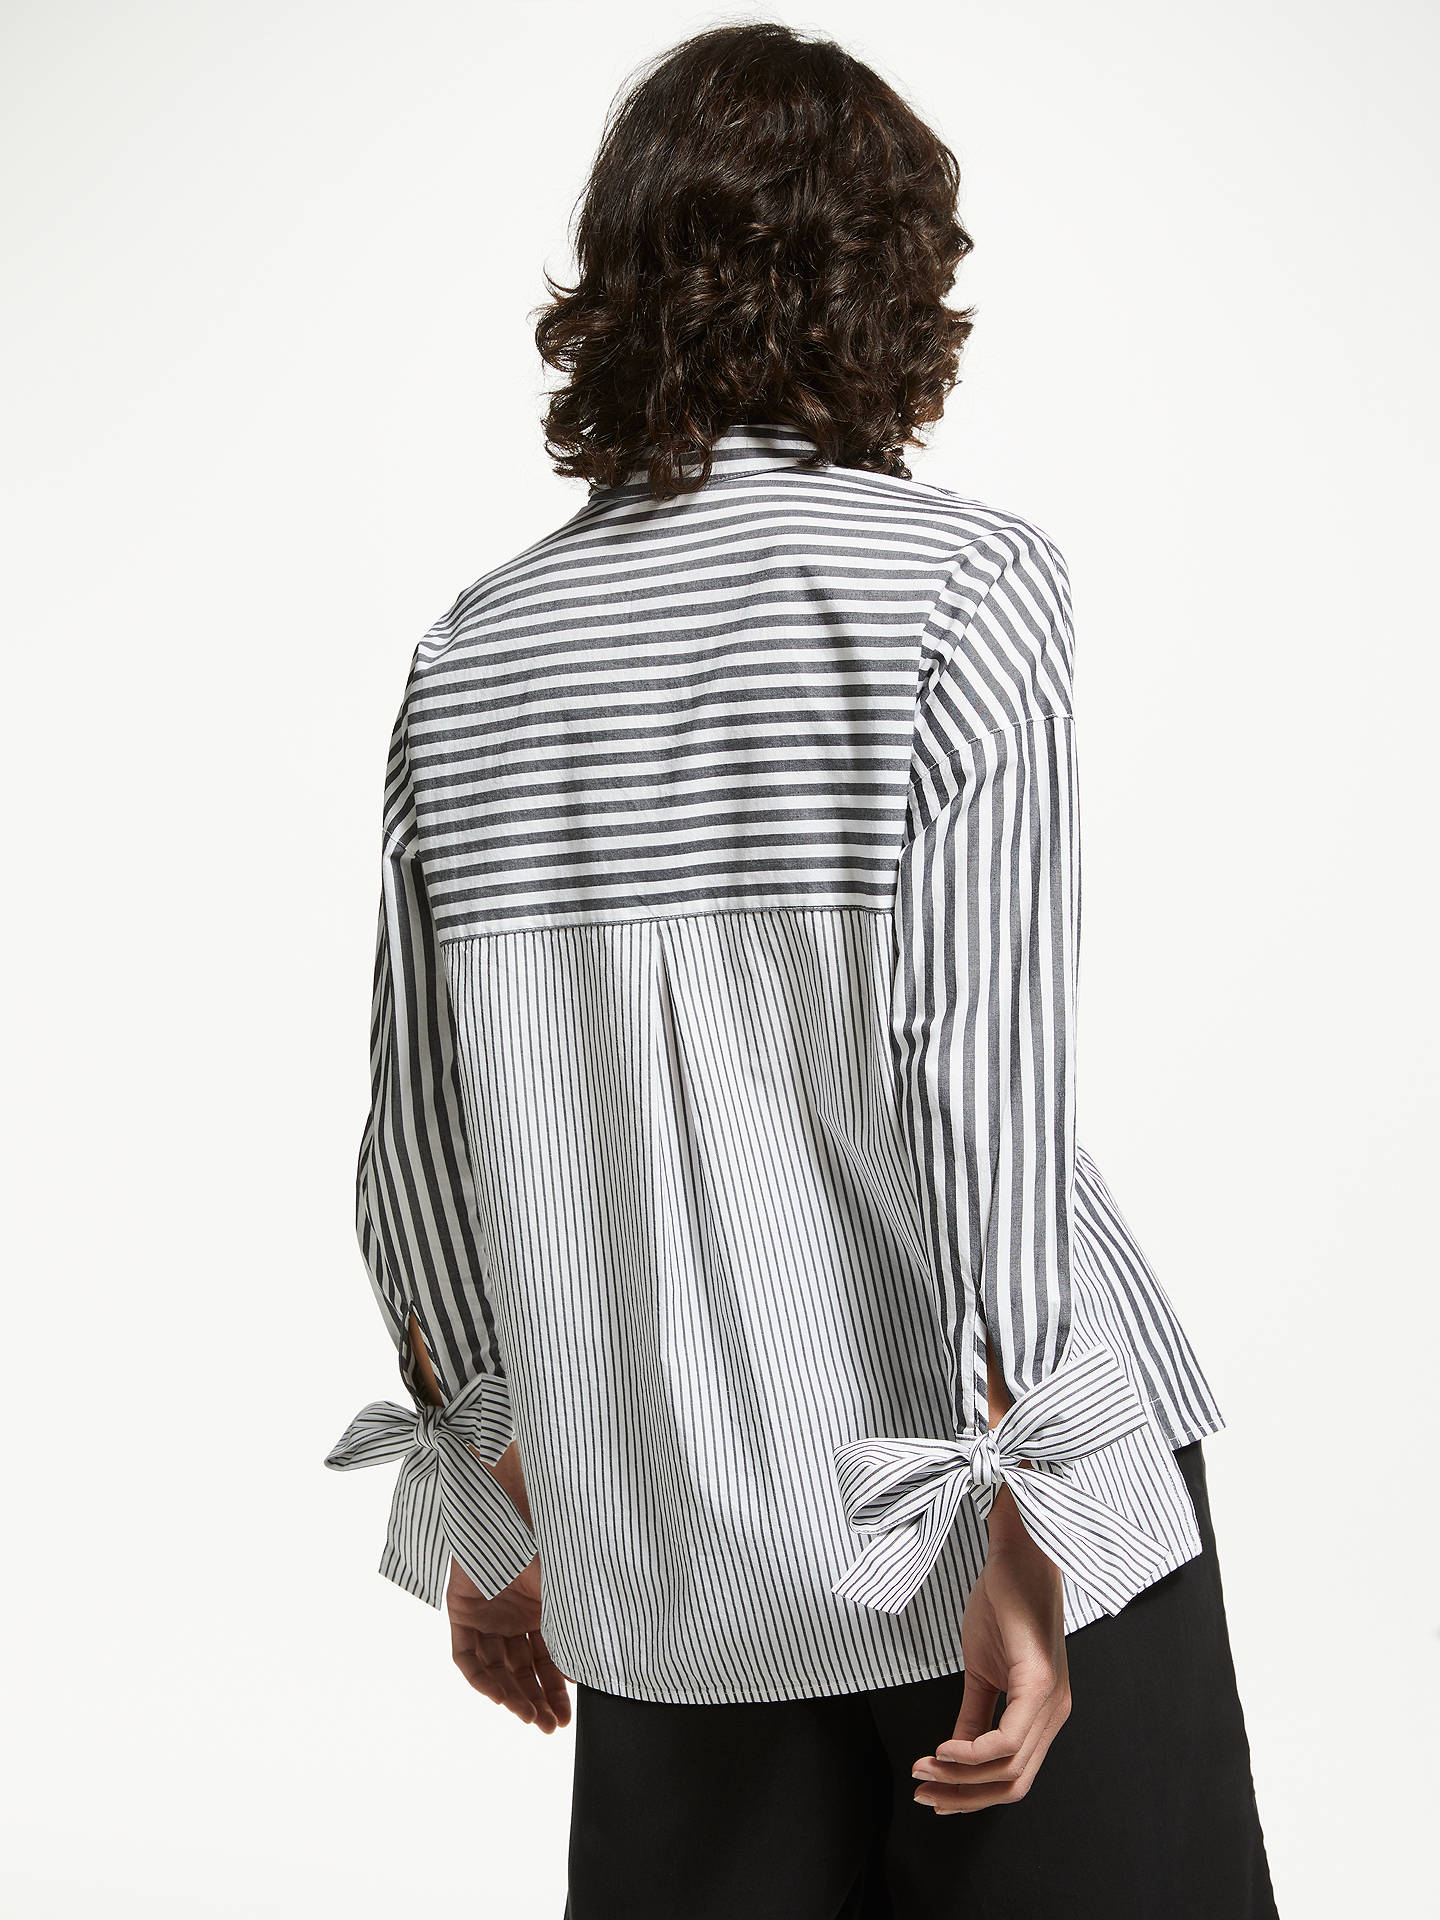 BuyARMEDANGELS Bennu Organic Cotton Stripe Shirt, White/Black, XS Online at johnlewis.com